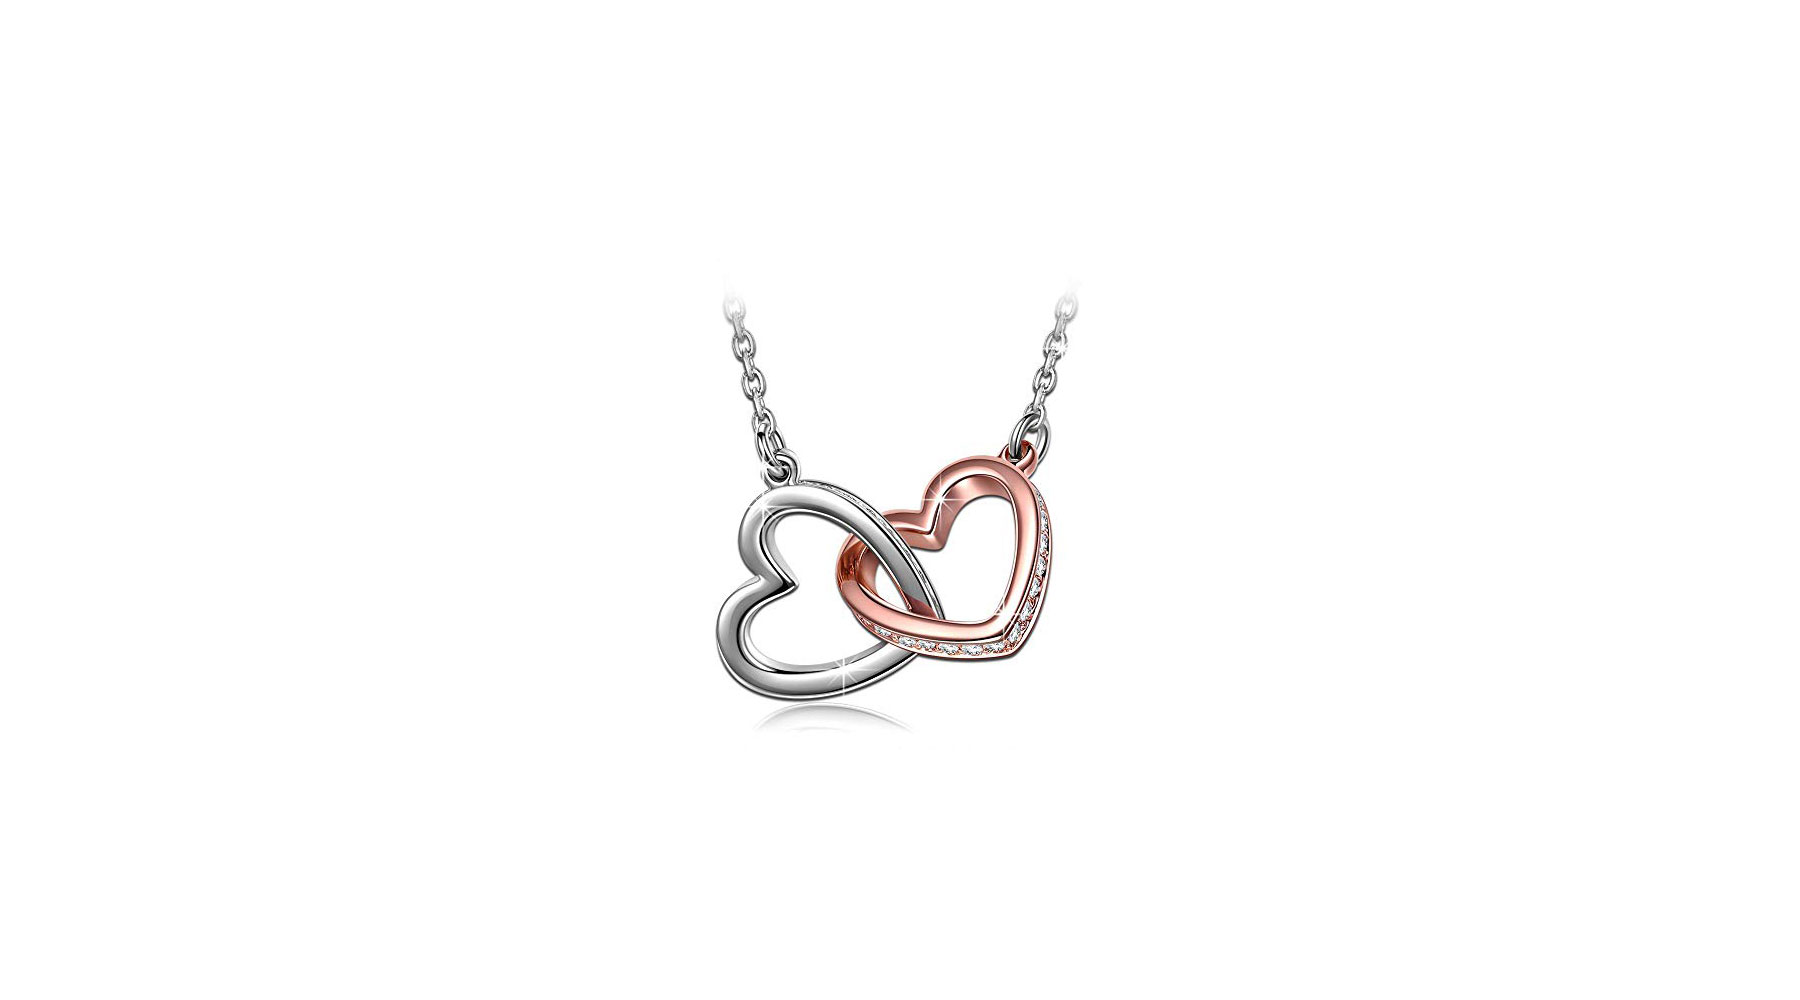 Qianse White Gold Heart Necklace